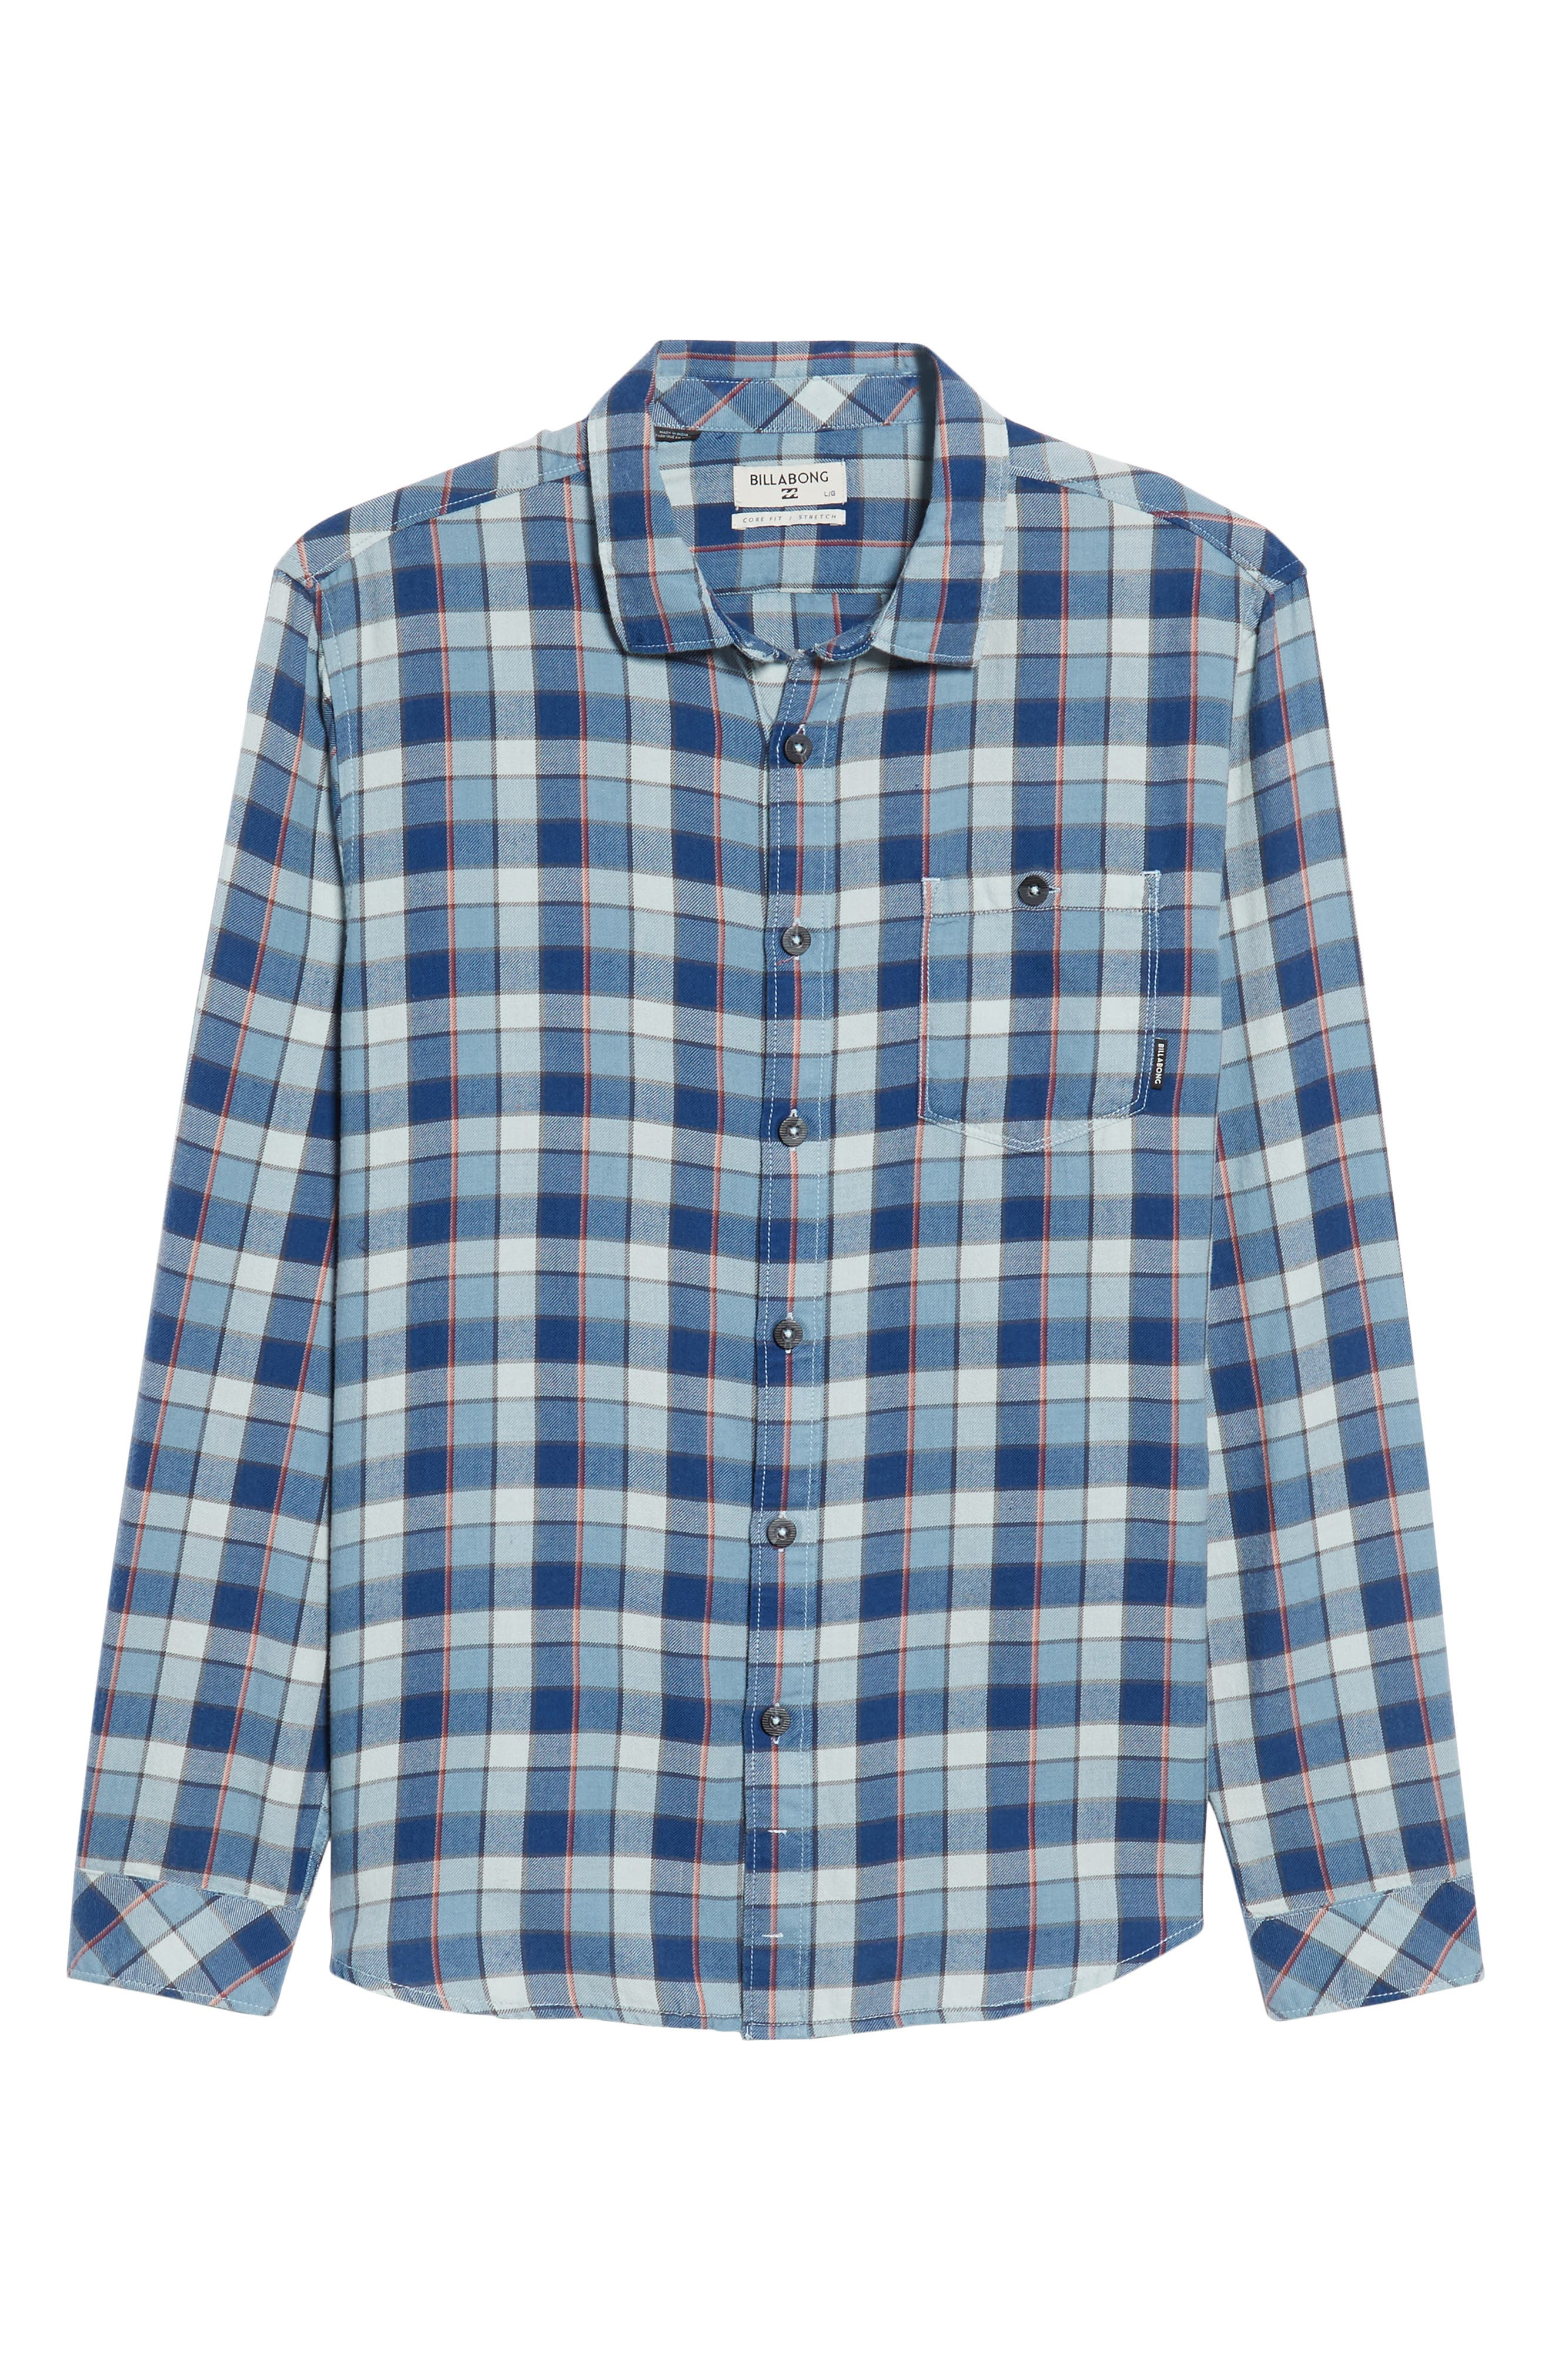 Bilabong Freemont Flannel Shirt,                             Alternate thumbnail 6, color,                             428